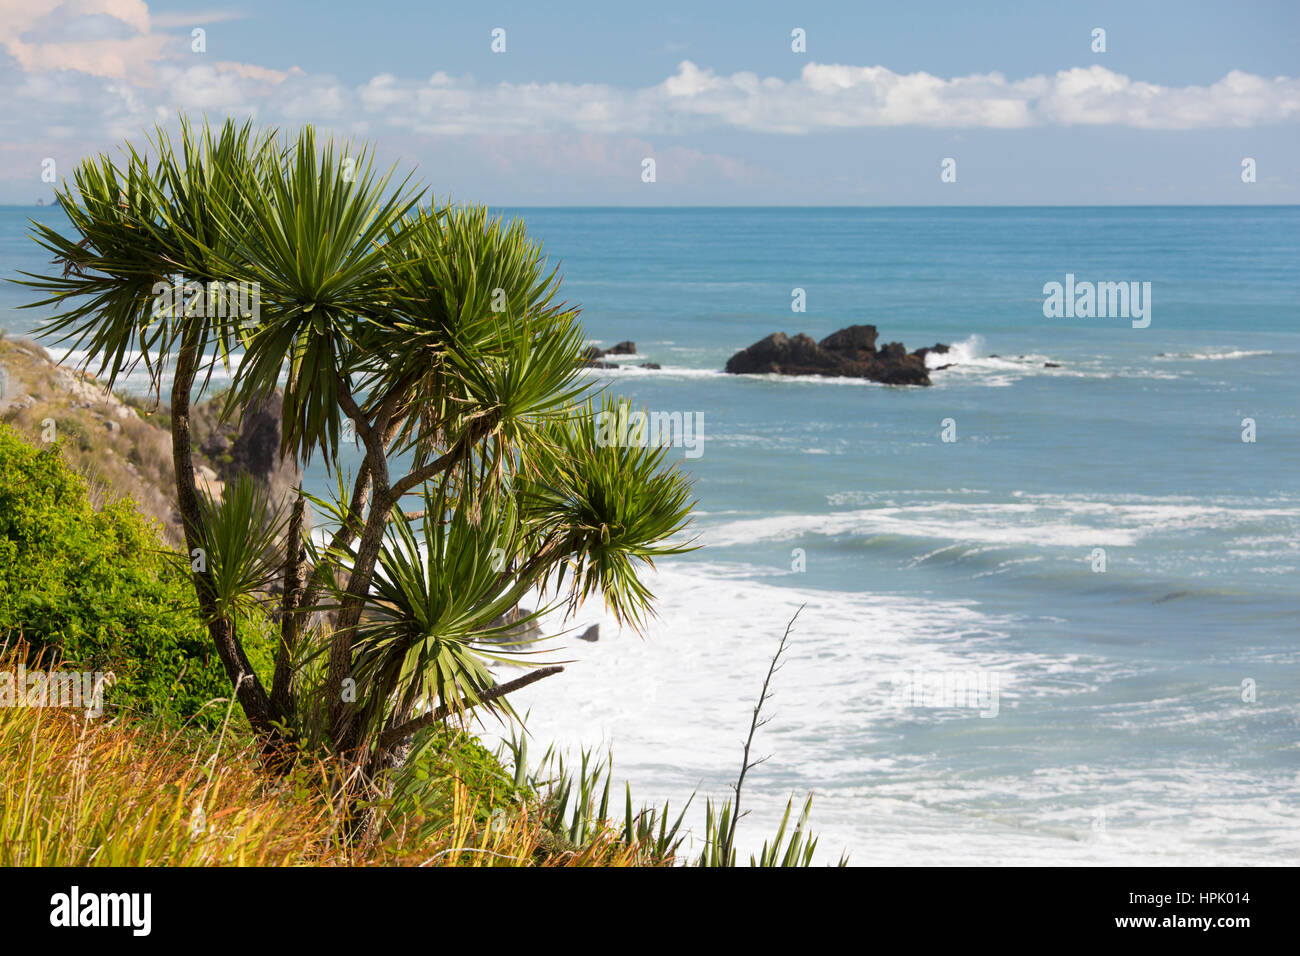 Greymouth, West Coast, New Zealand. Clifftop vegetation growing above the Tasman Sea near Seventeen Mile Bluff. - Stock Image